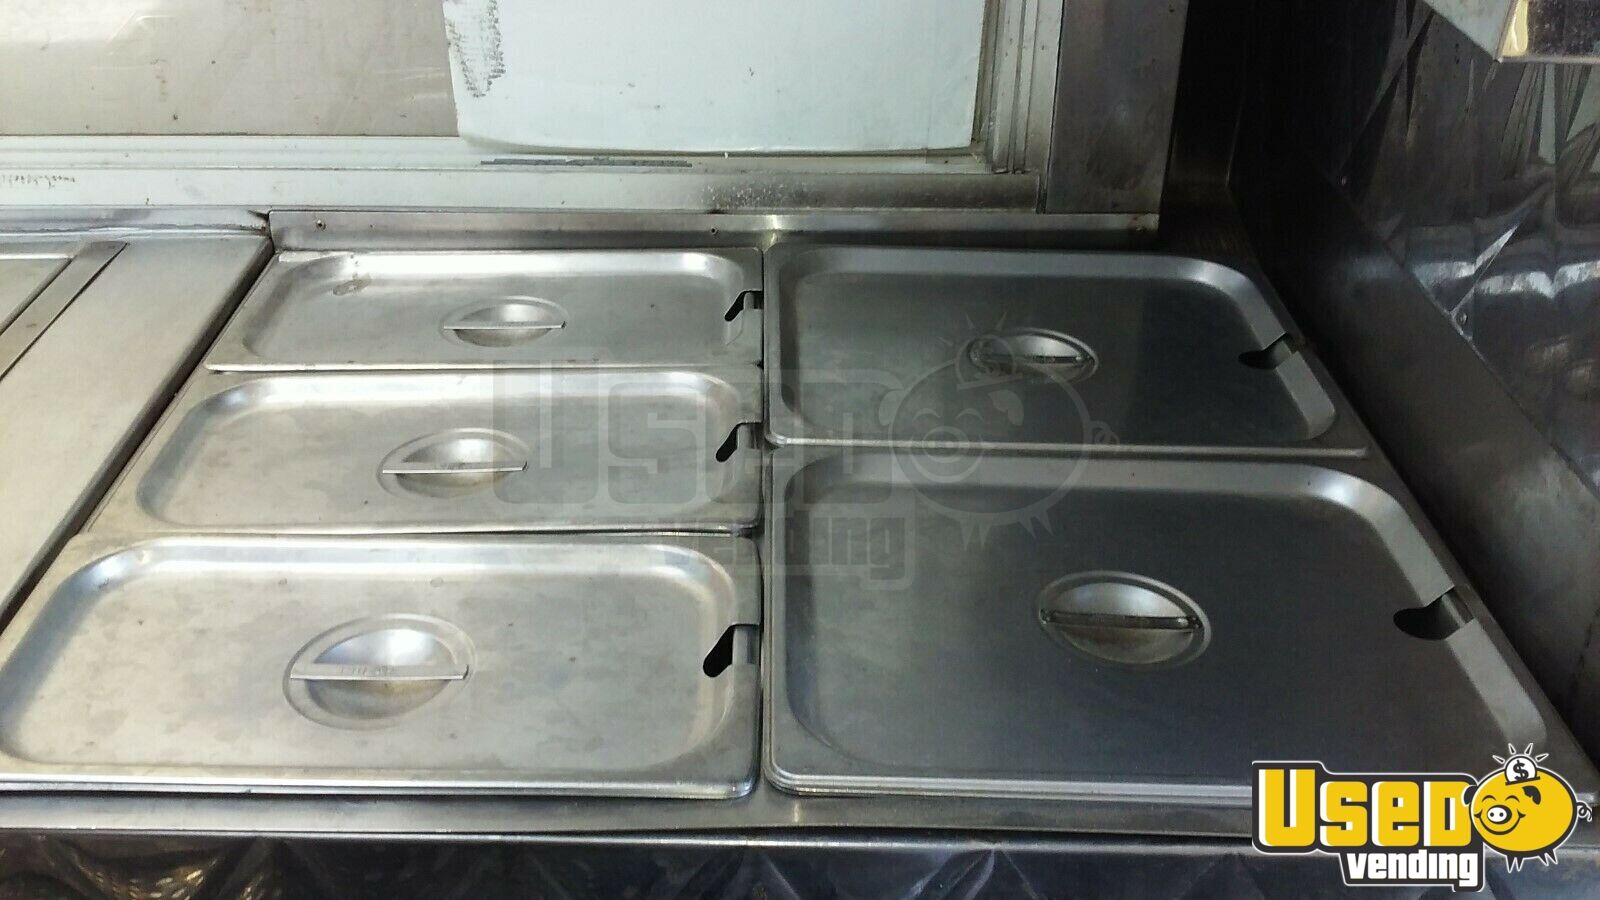 1981 350 Step Van Kitchen Food Truck All-purpose Food Truck Prep Station Cooler New Jersey for Sale - 9